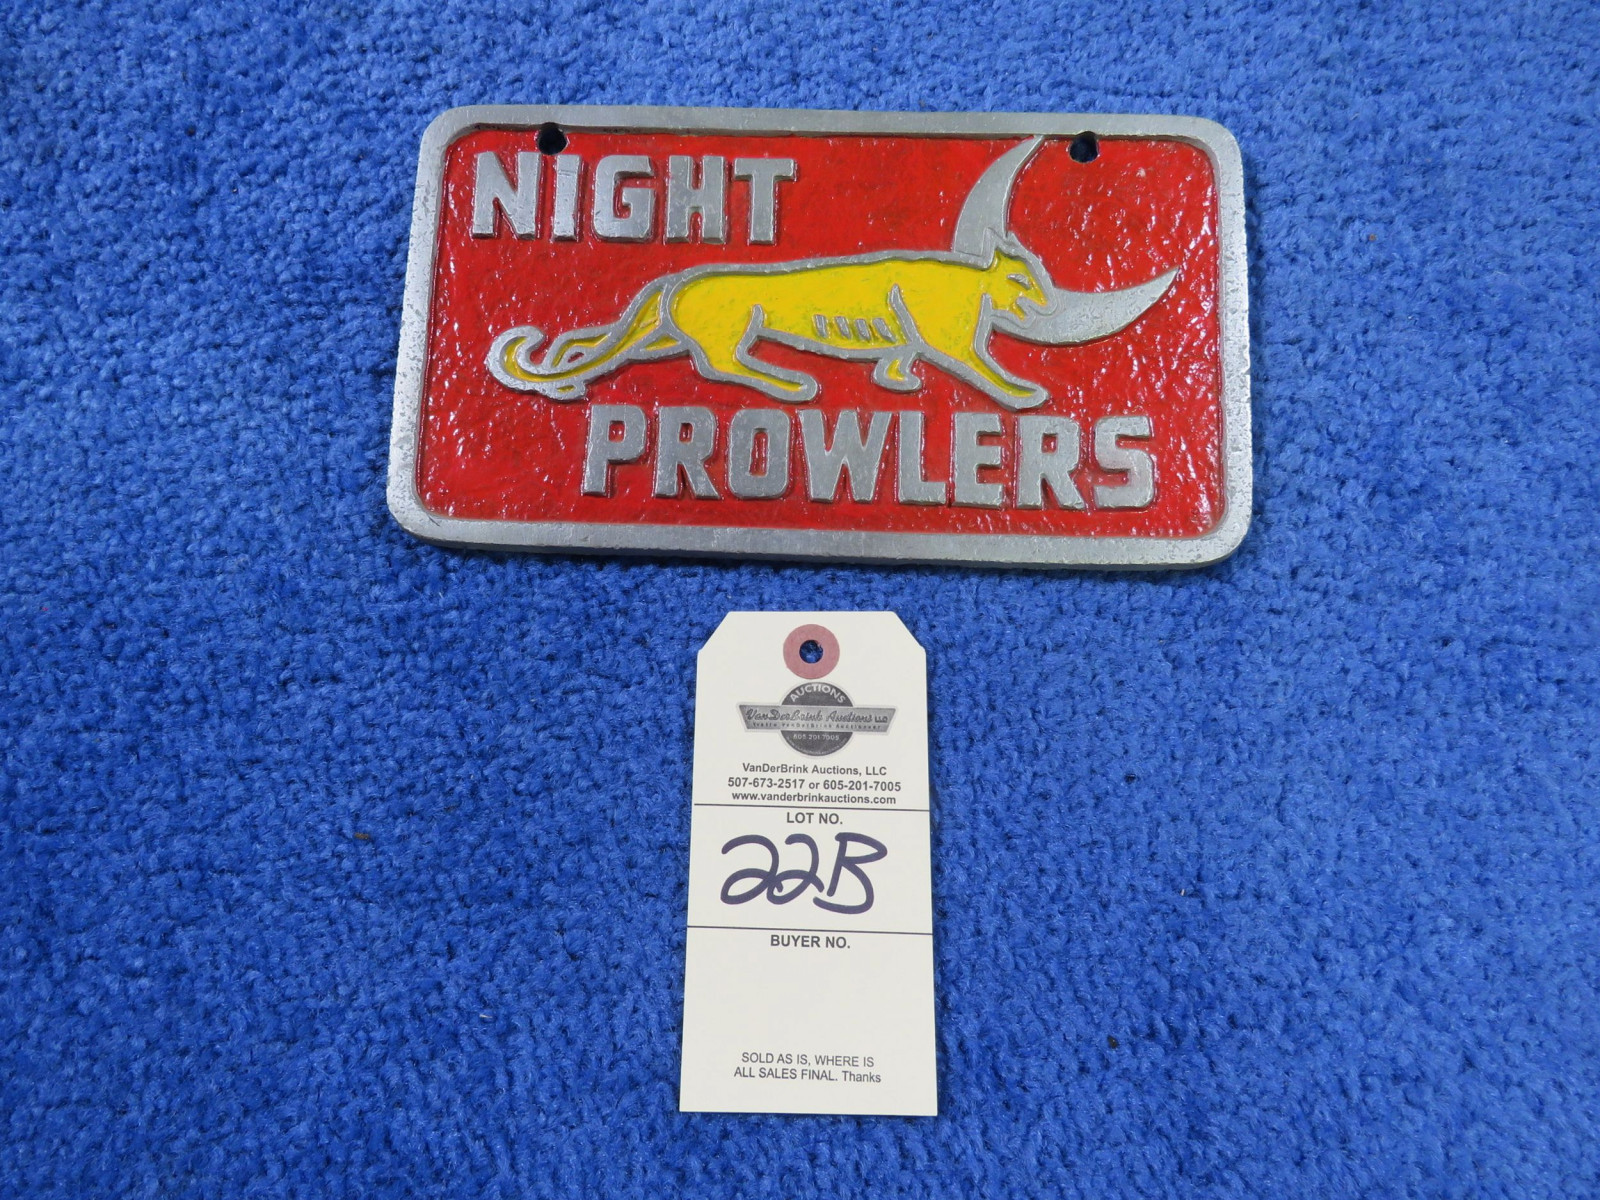 Vintage Pot Metal Night Prowlers Vehicle Club Plate - Image 1